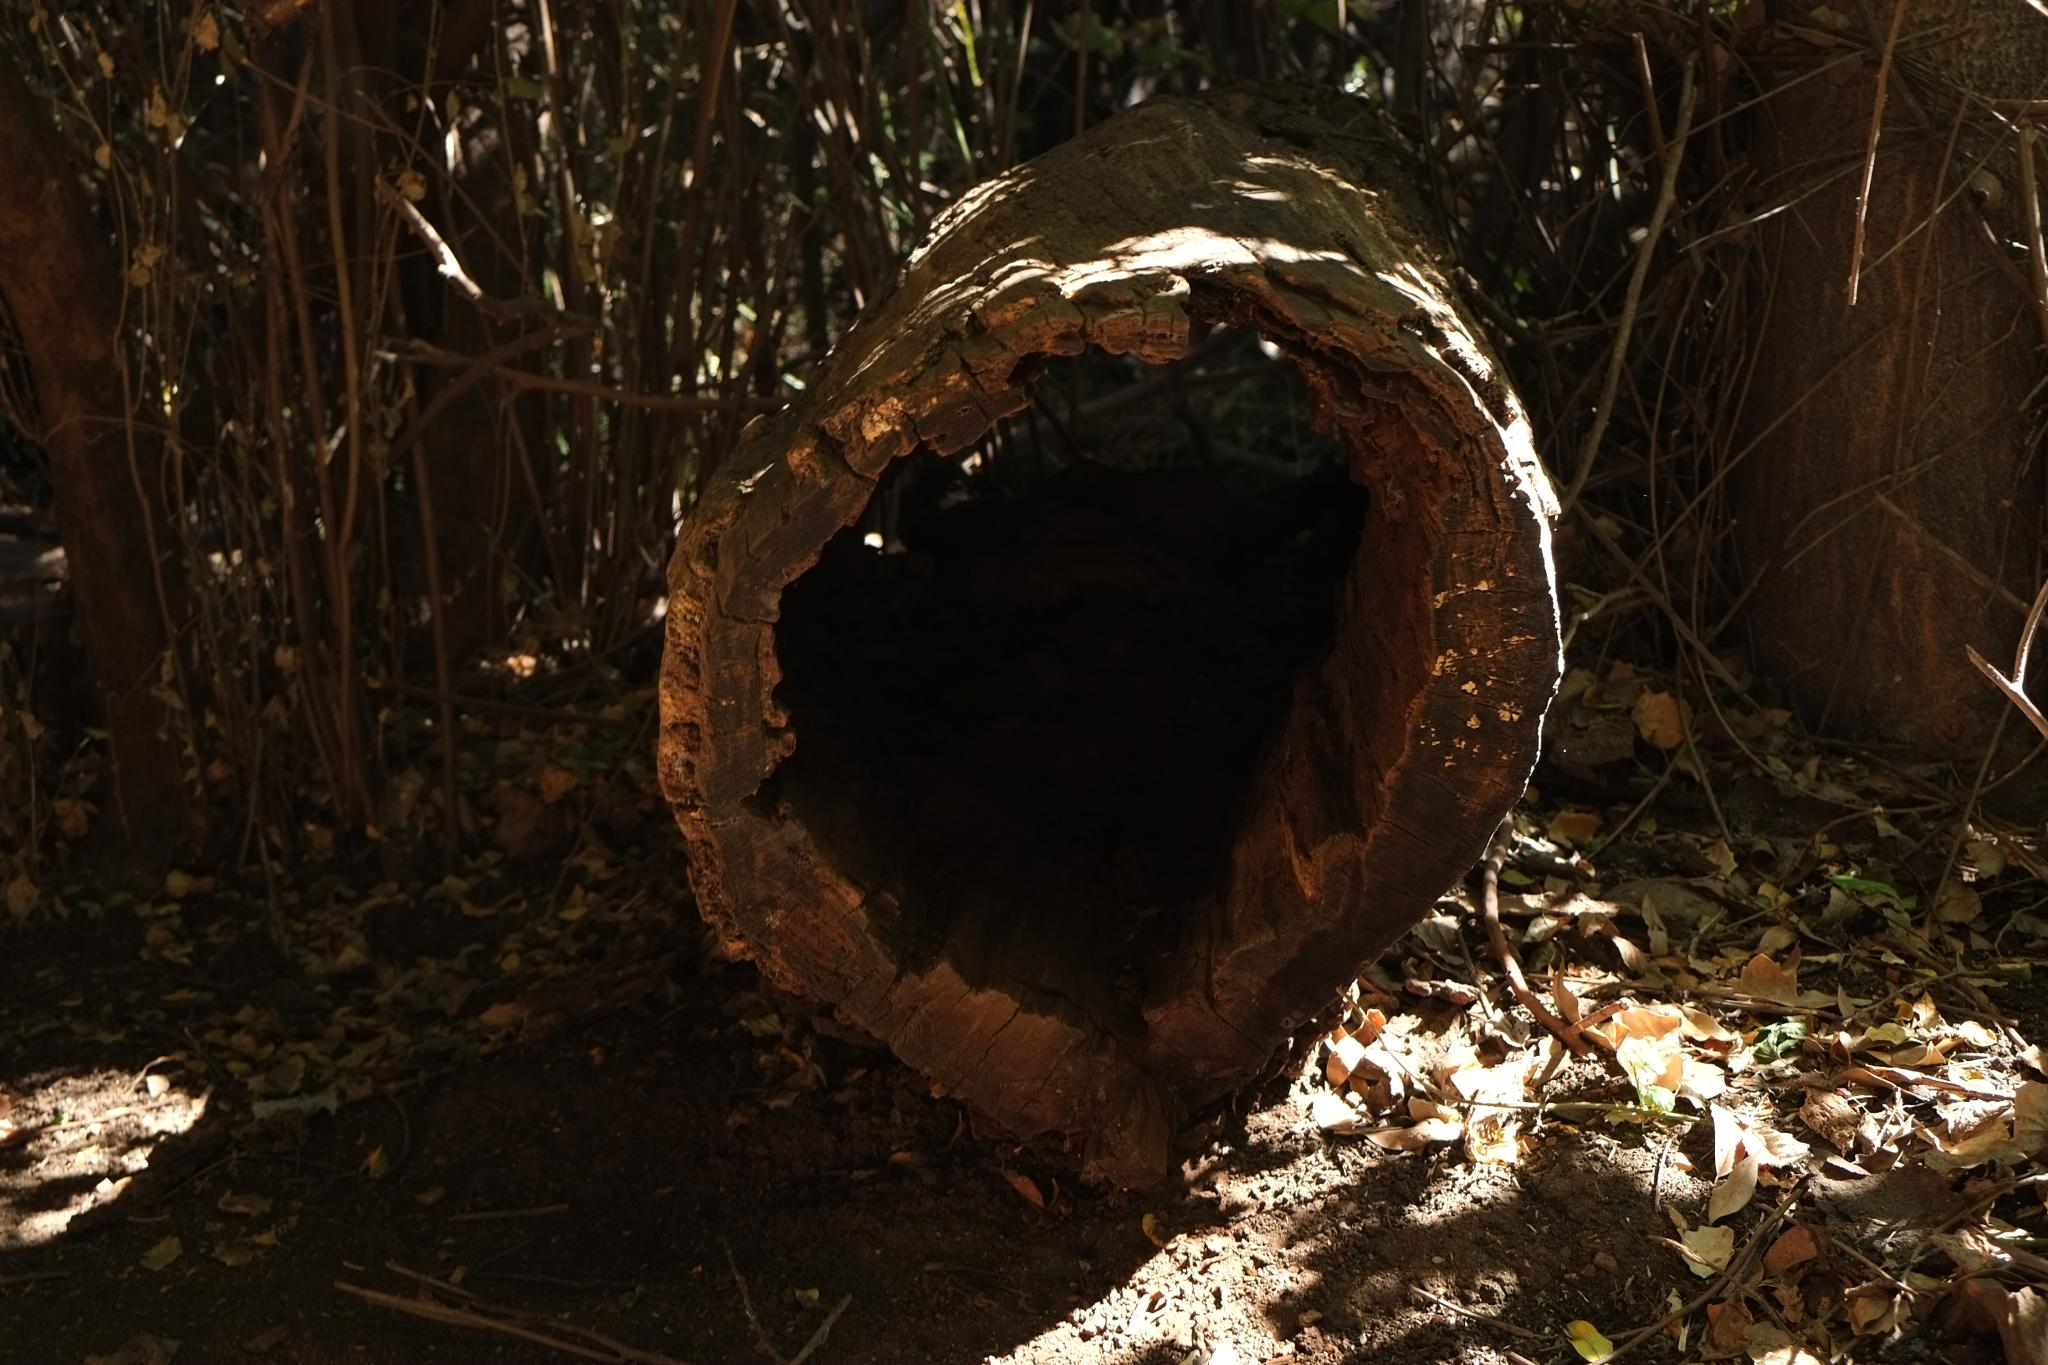 Hollow in (the wood) by doron